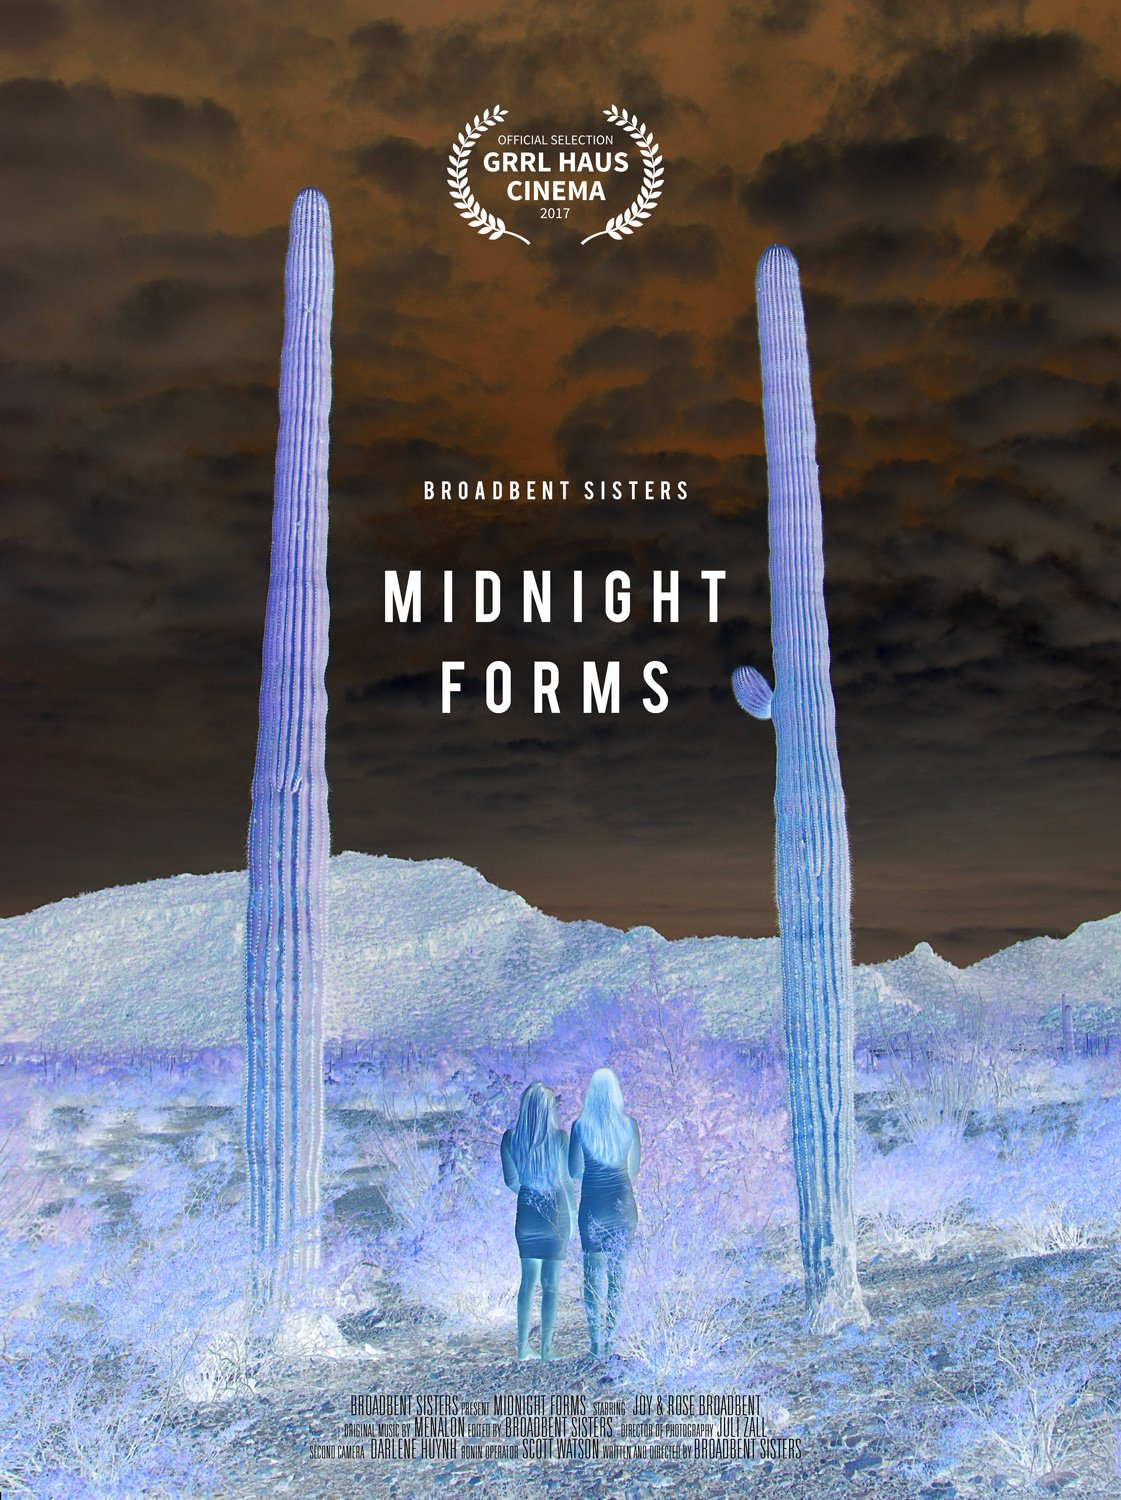 Midnight Forms - A Short Film by the Broadbent Sisters